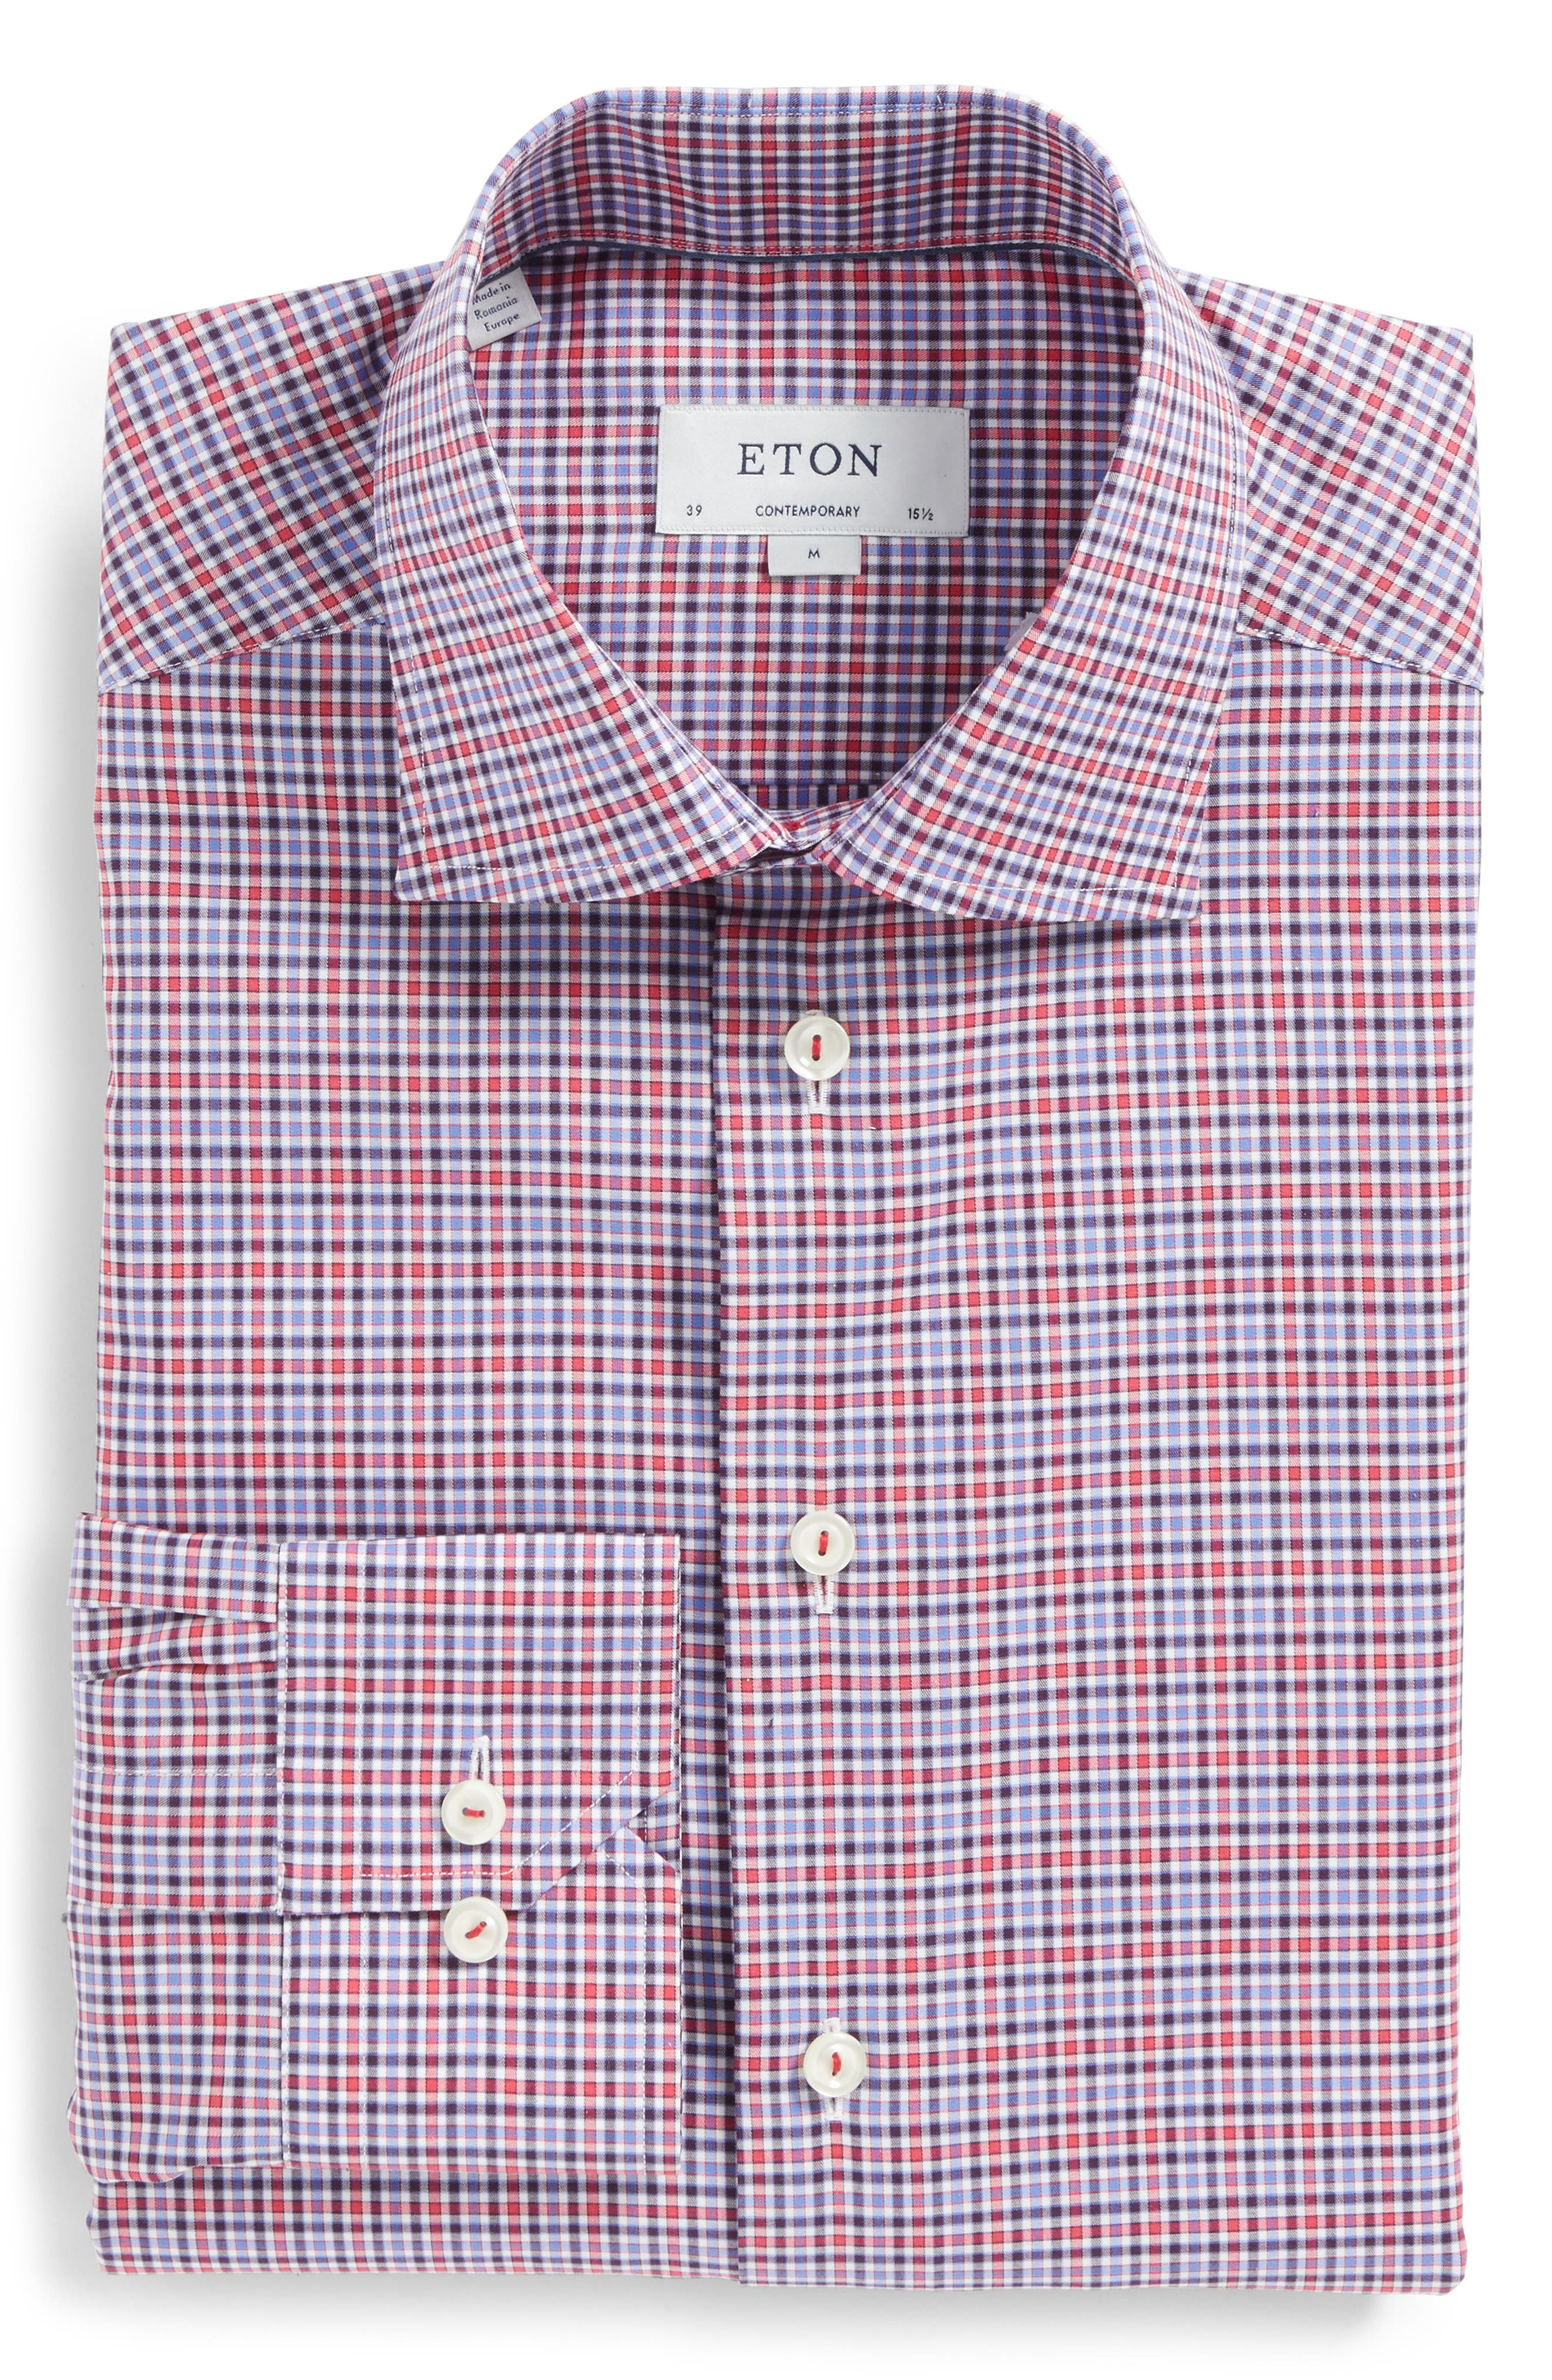 Contemporary Fit Check Dress Shirt,                             Main thumbnail 1, color,                             Pink/ Red